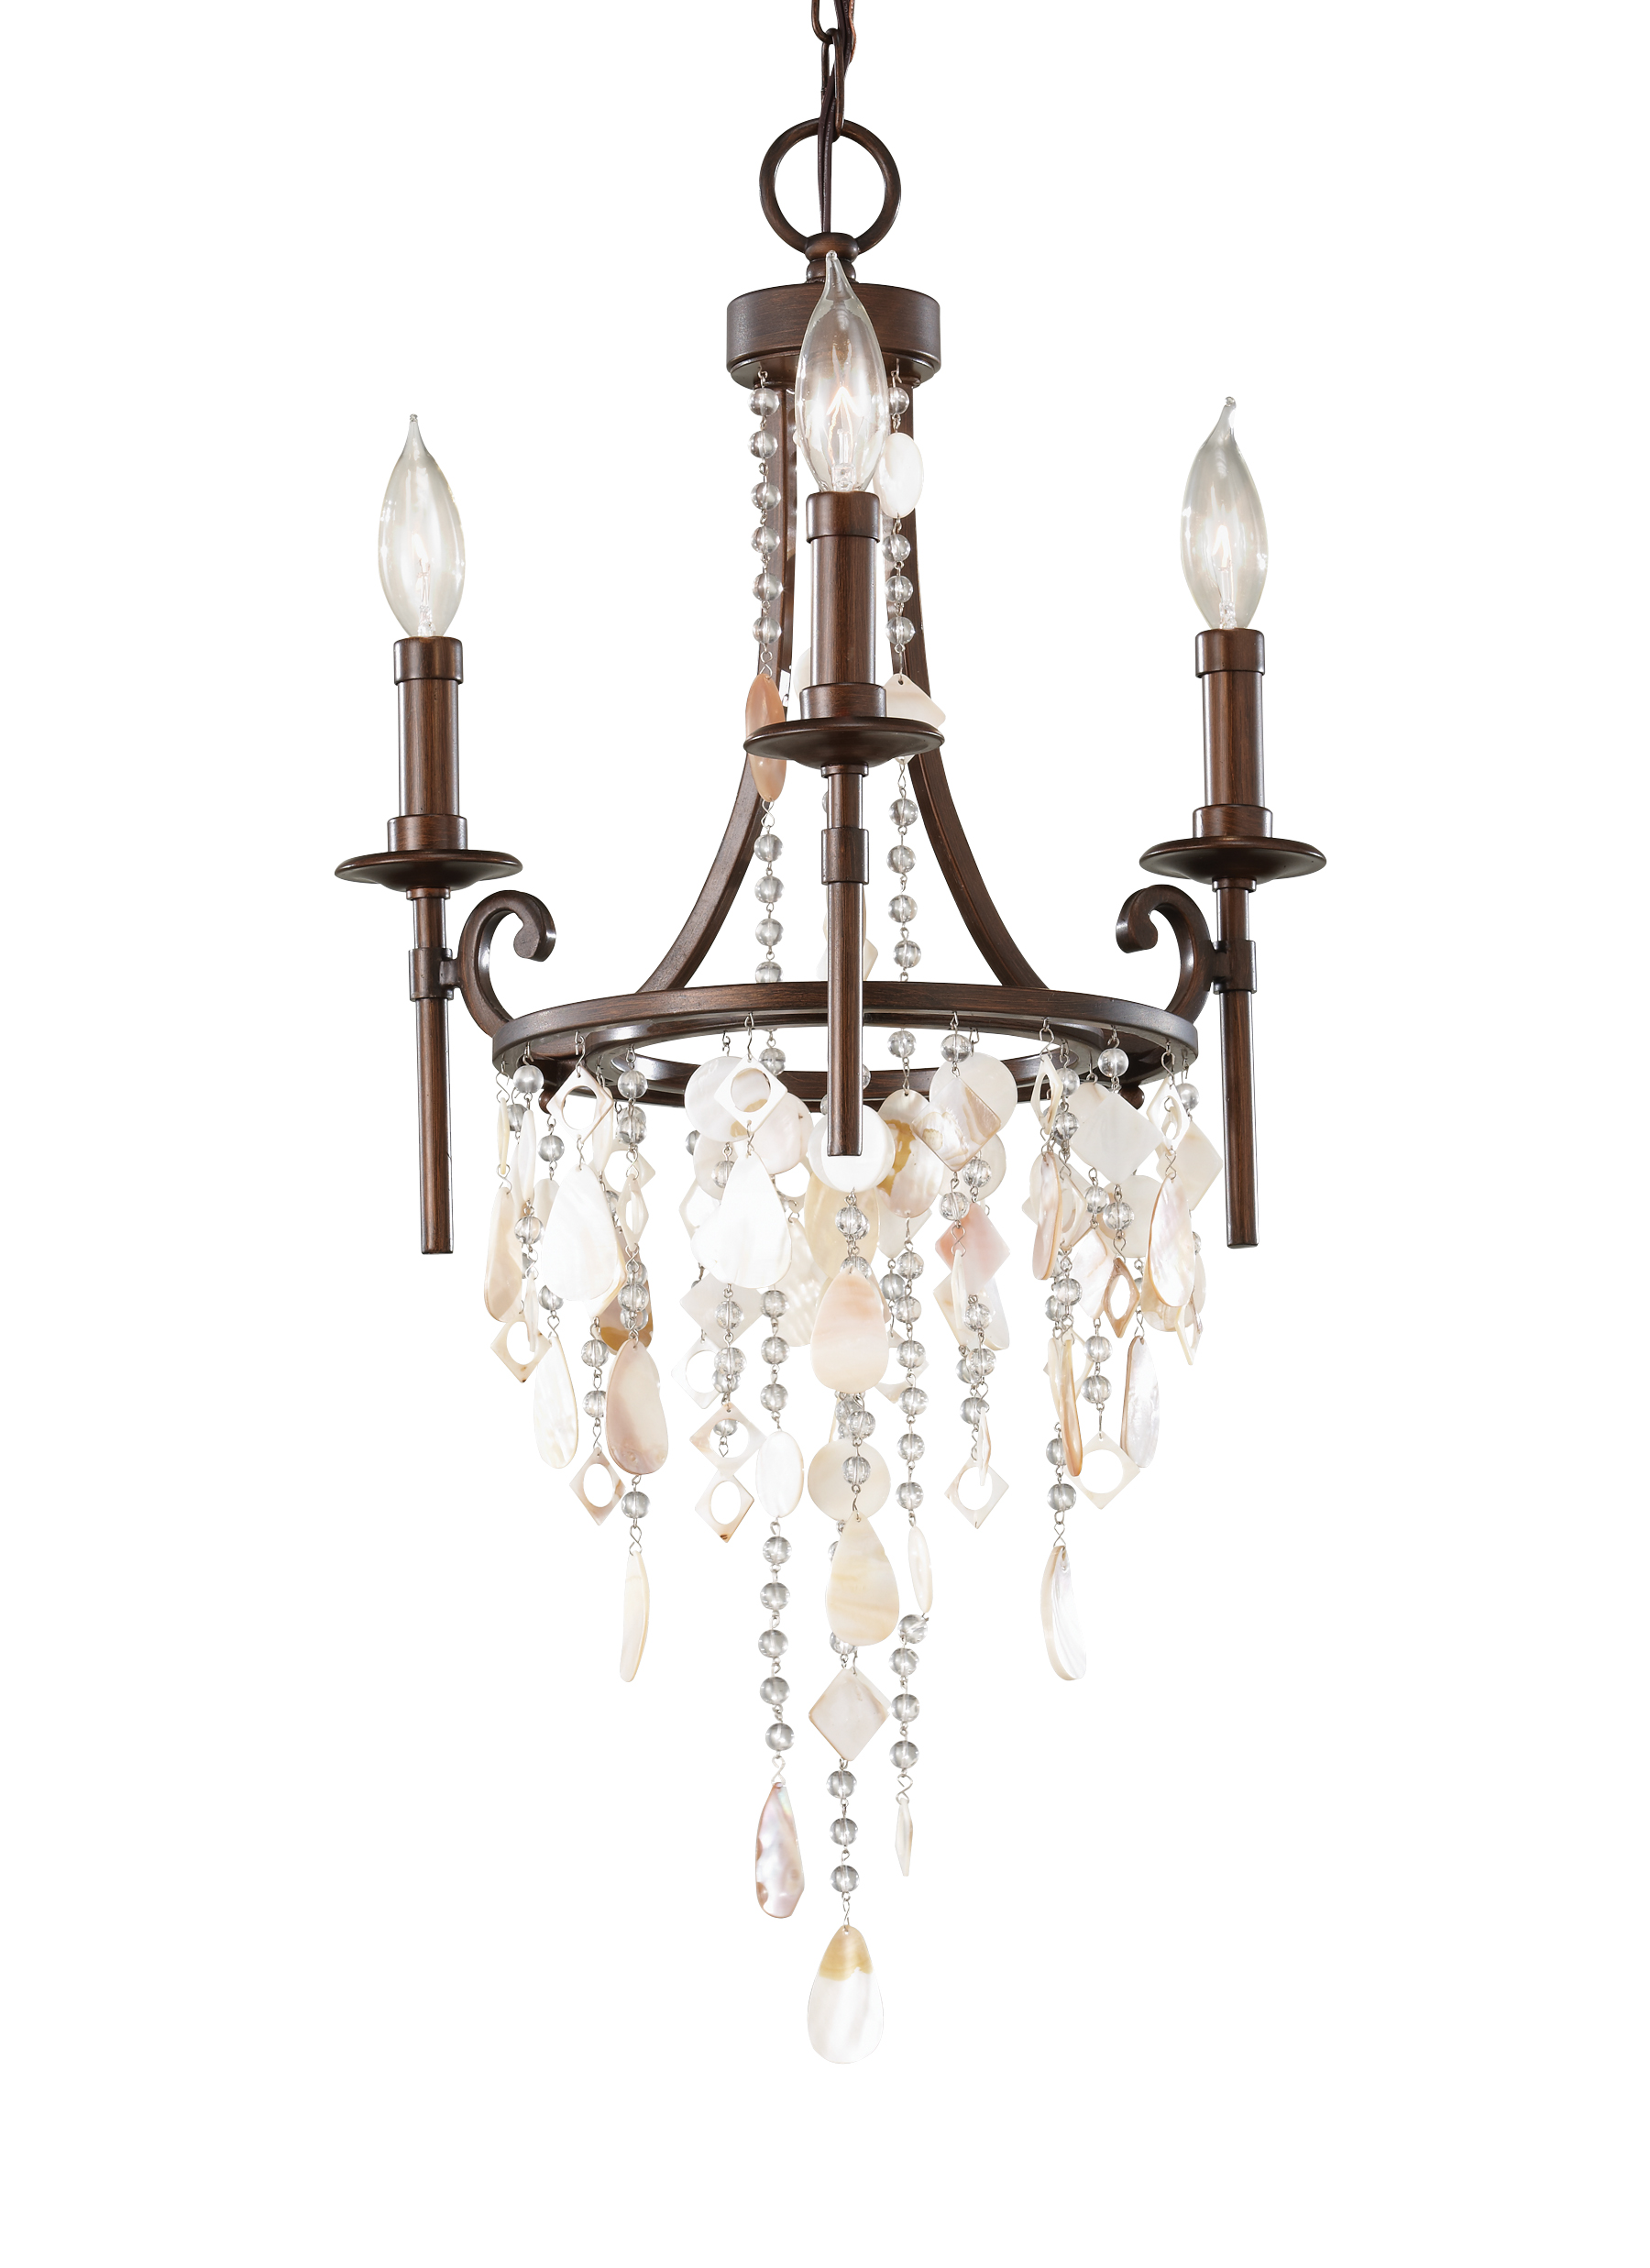 chandeliers murray chandelier designing feiss in awesome interior with home ideas